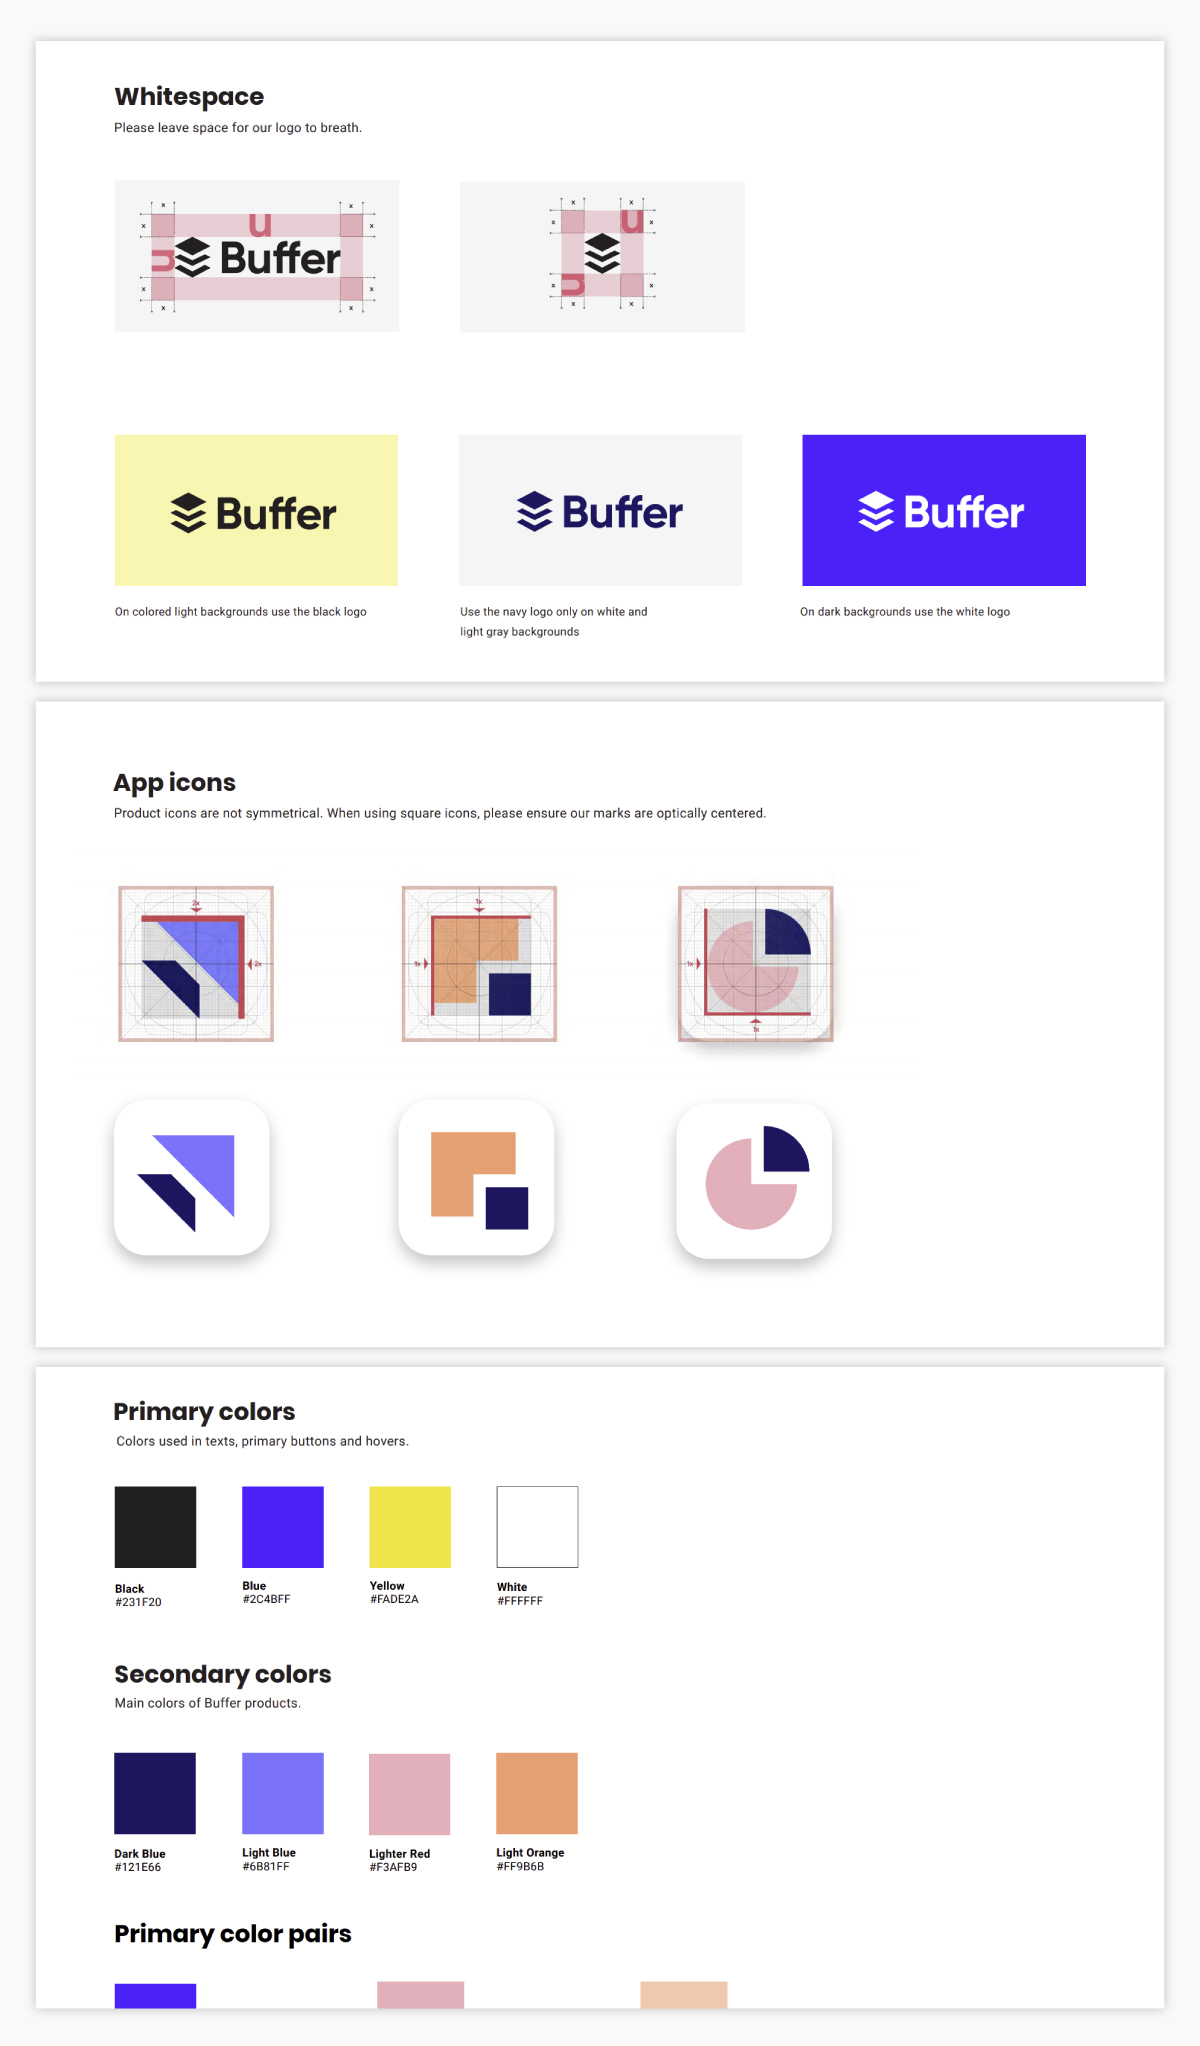 A screenshot of Buffer's brand guidelines.